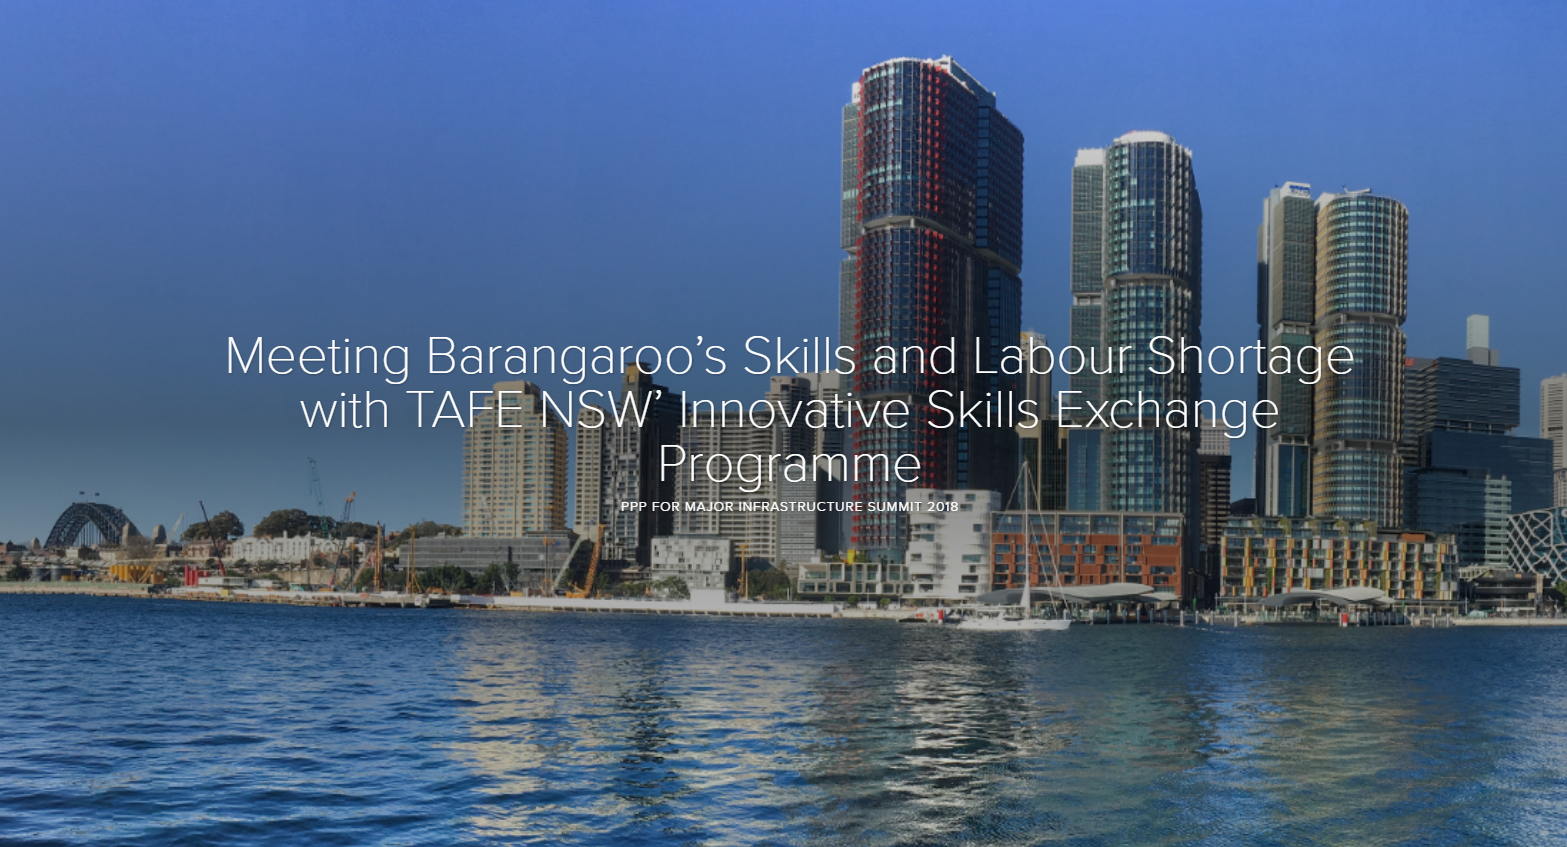 Meeting Barangaroo's Skills and Labour Shortage with TAFE NSW' Skills Exchange Programme (PDF)